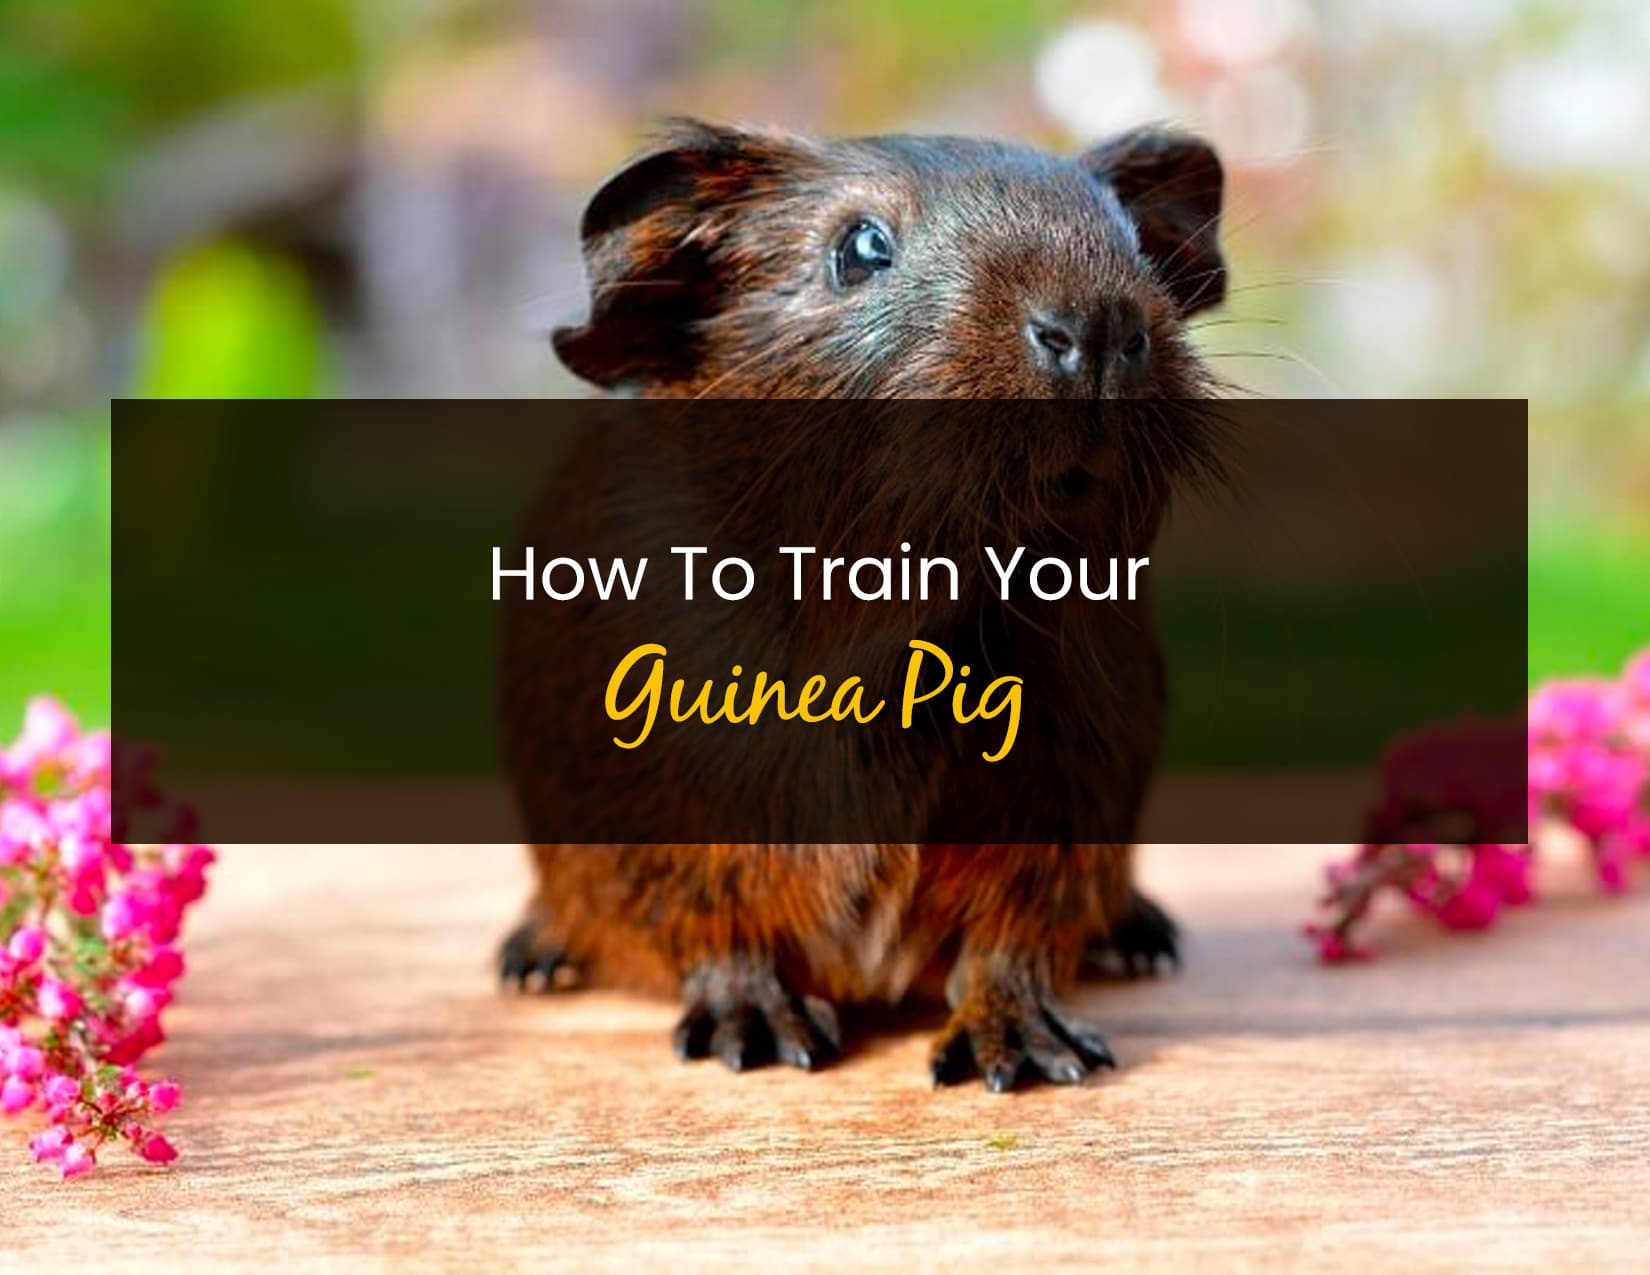 How To Train Your Guinea Pig - WP